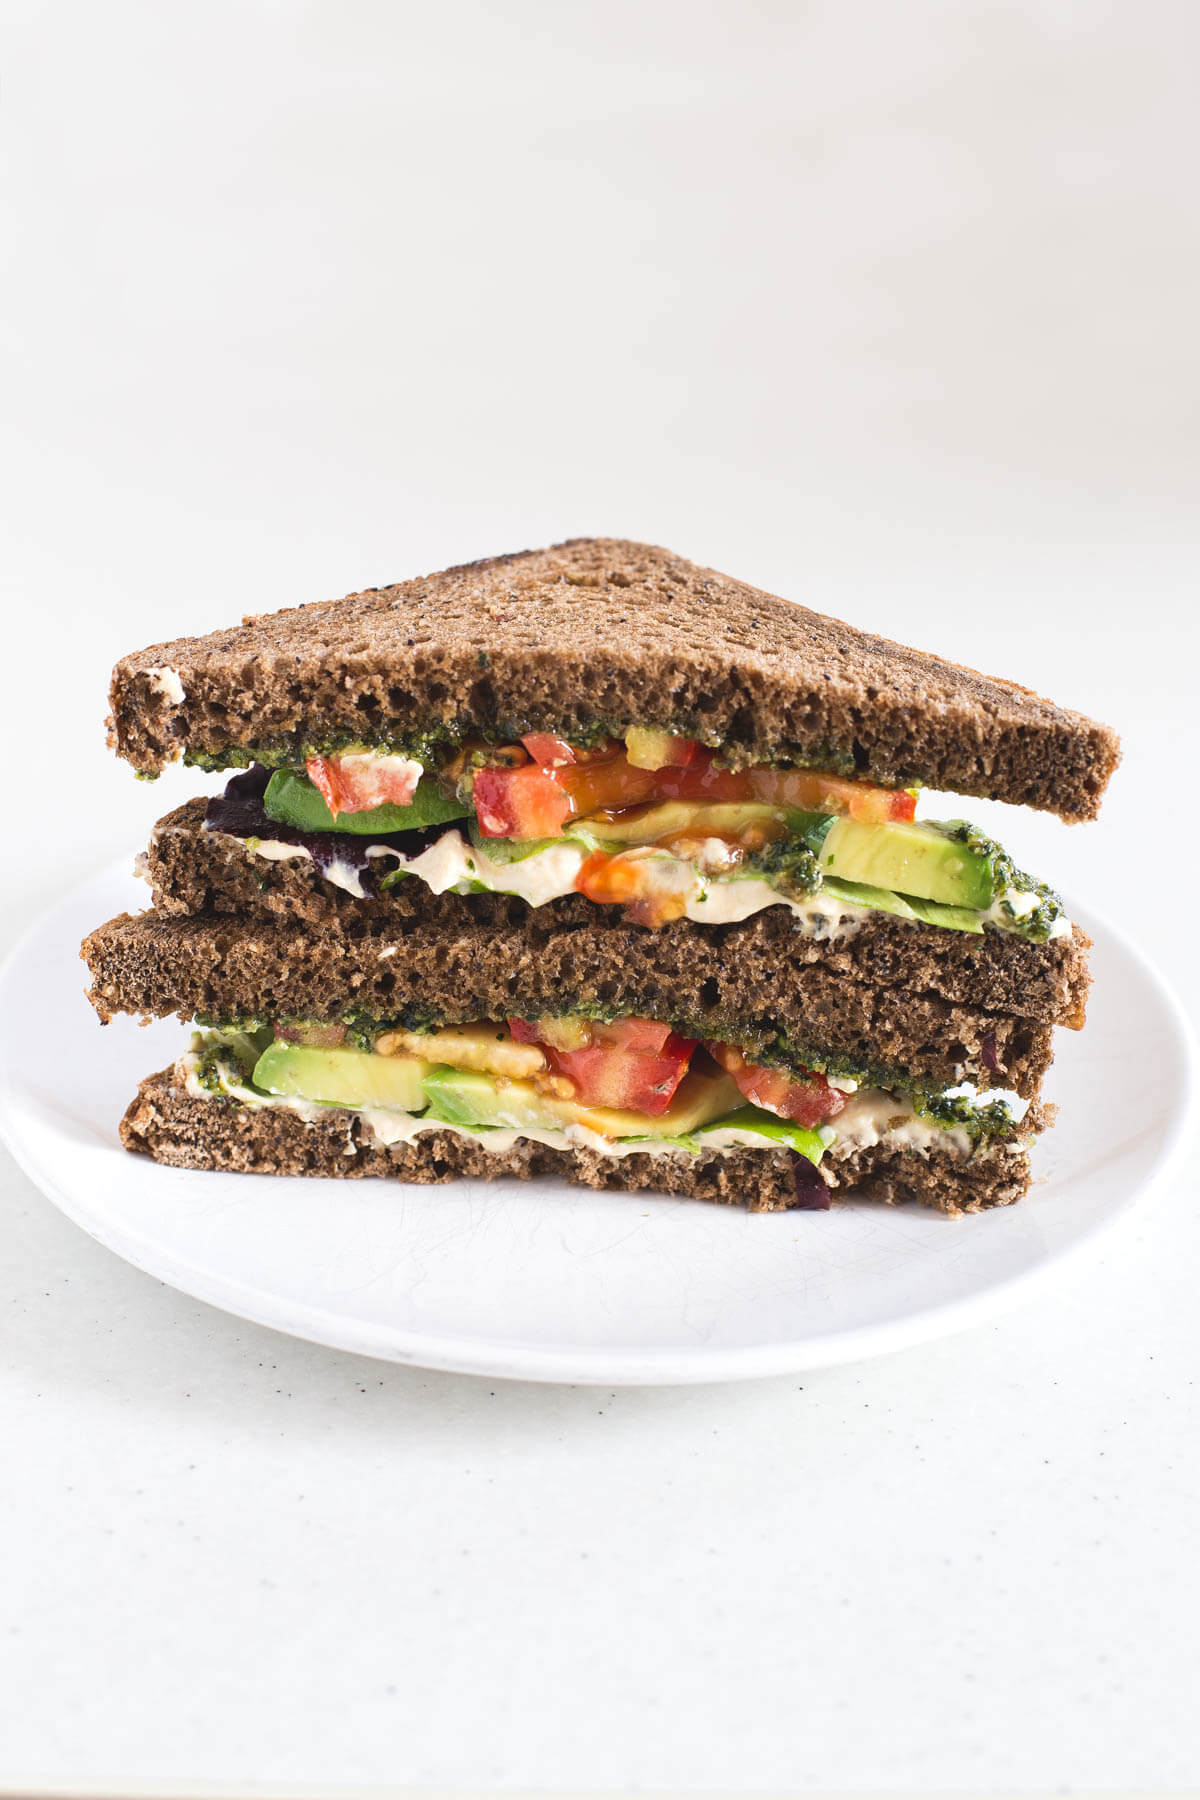 Vegan Pesto, Hummus and Avocado Sandwich - To make this vegan sandwich, I have combined three of my favourite ingredients: vegan pesto, hummus and avocado. It is of scandal!